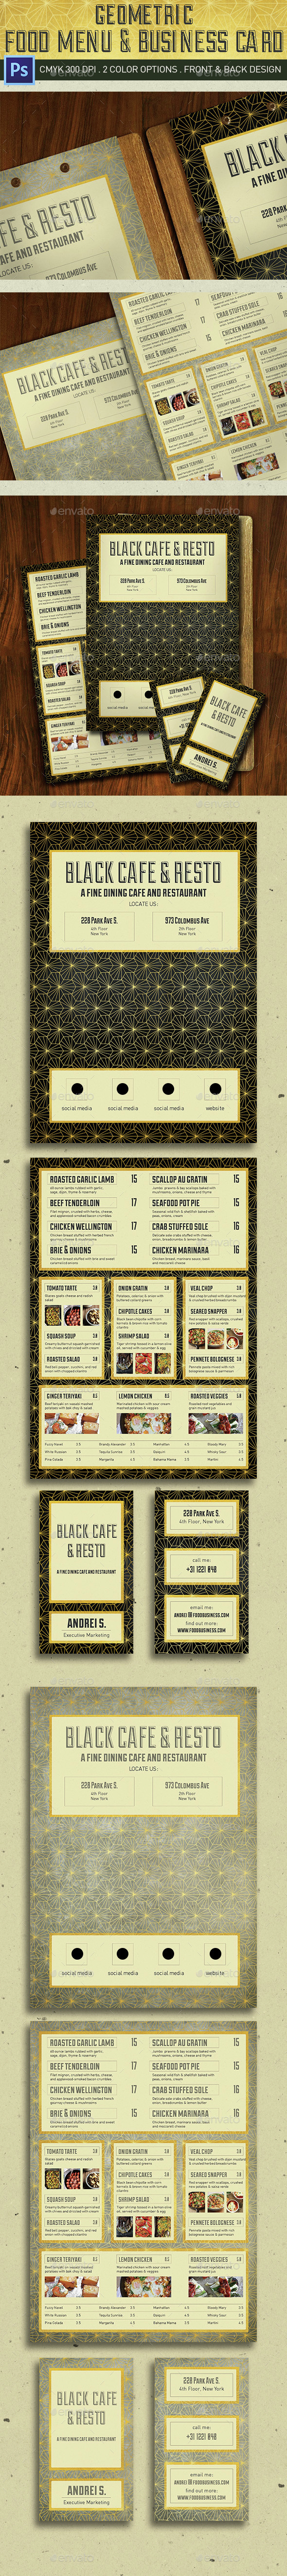 Geometric Food Menu - Food Menus Print Templates